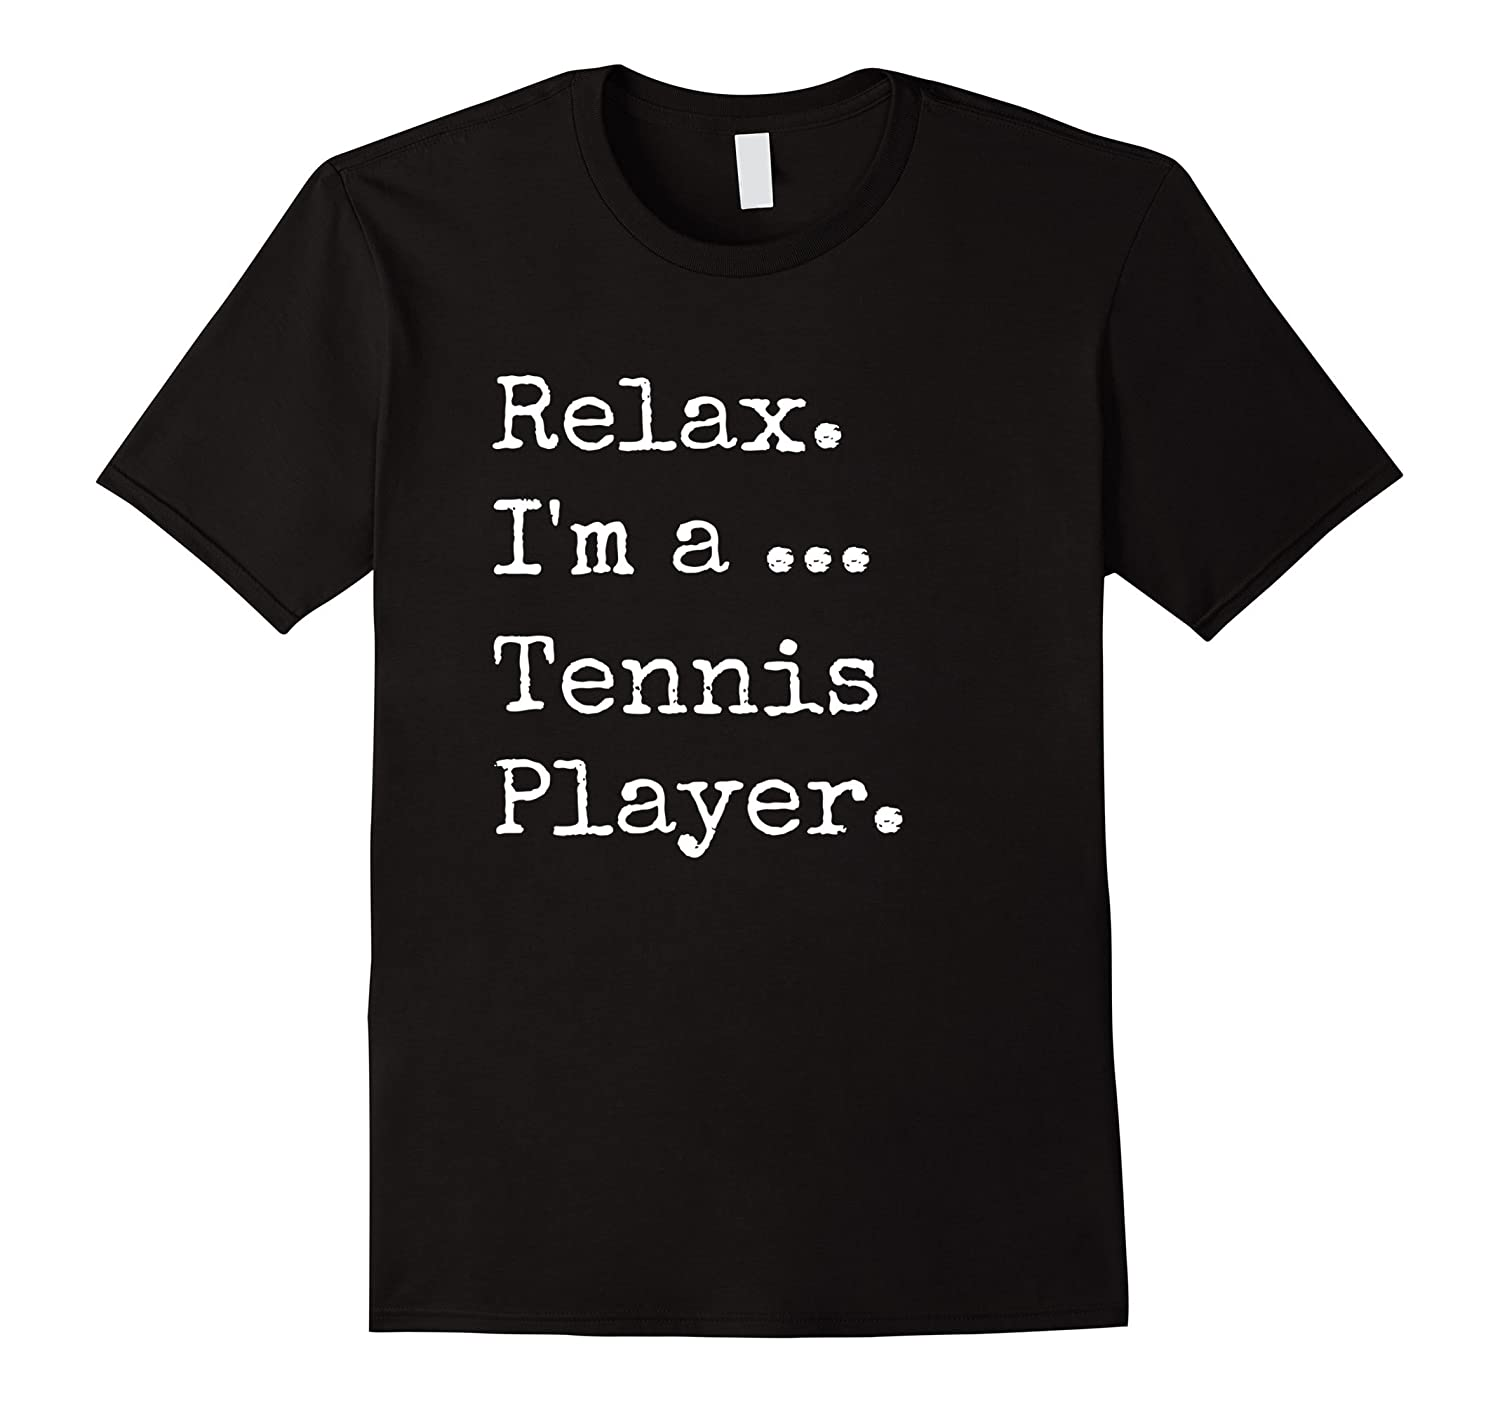 Funny Tennis T Shirts Players Gifts. Relax & Play Tennis.-T-Shirt